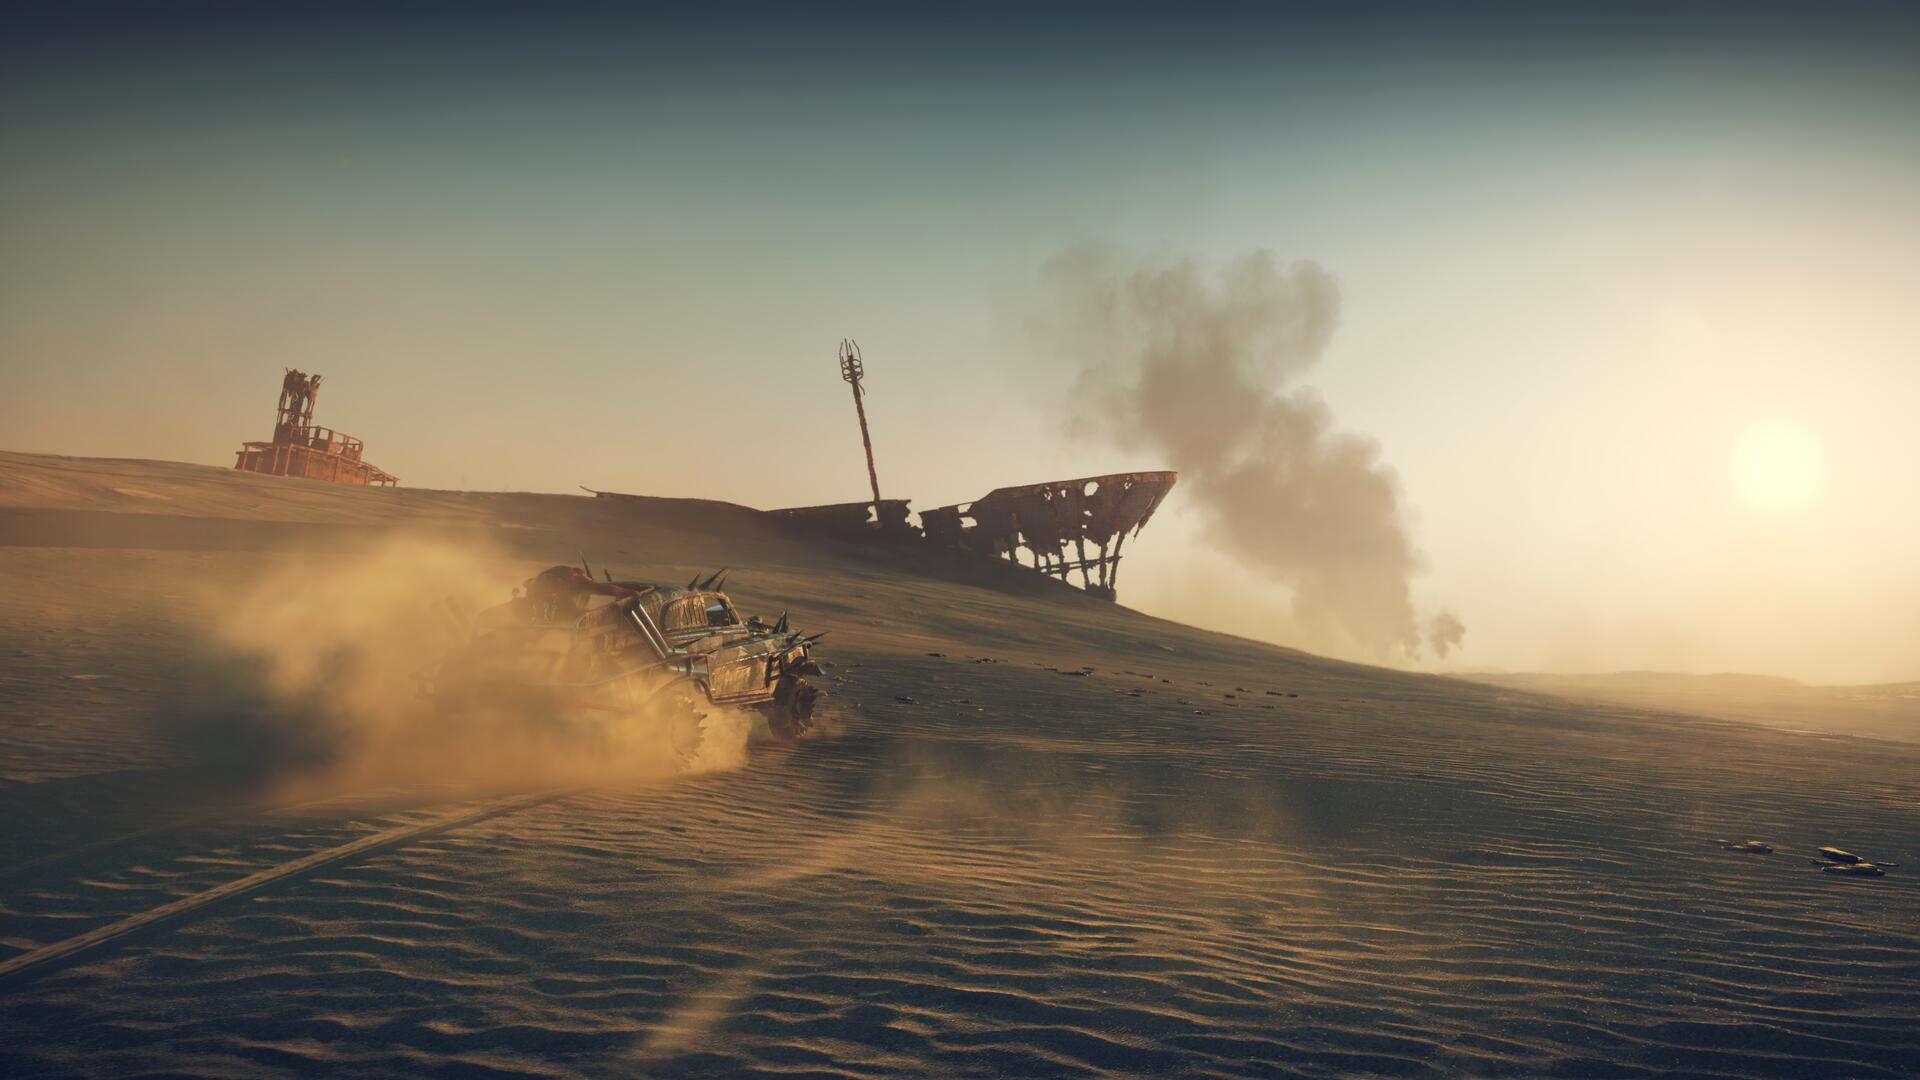 Relishing the Vast Post-Apocalypse of the Highly Underrated Mad Max